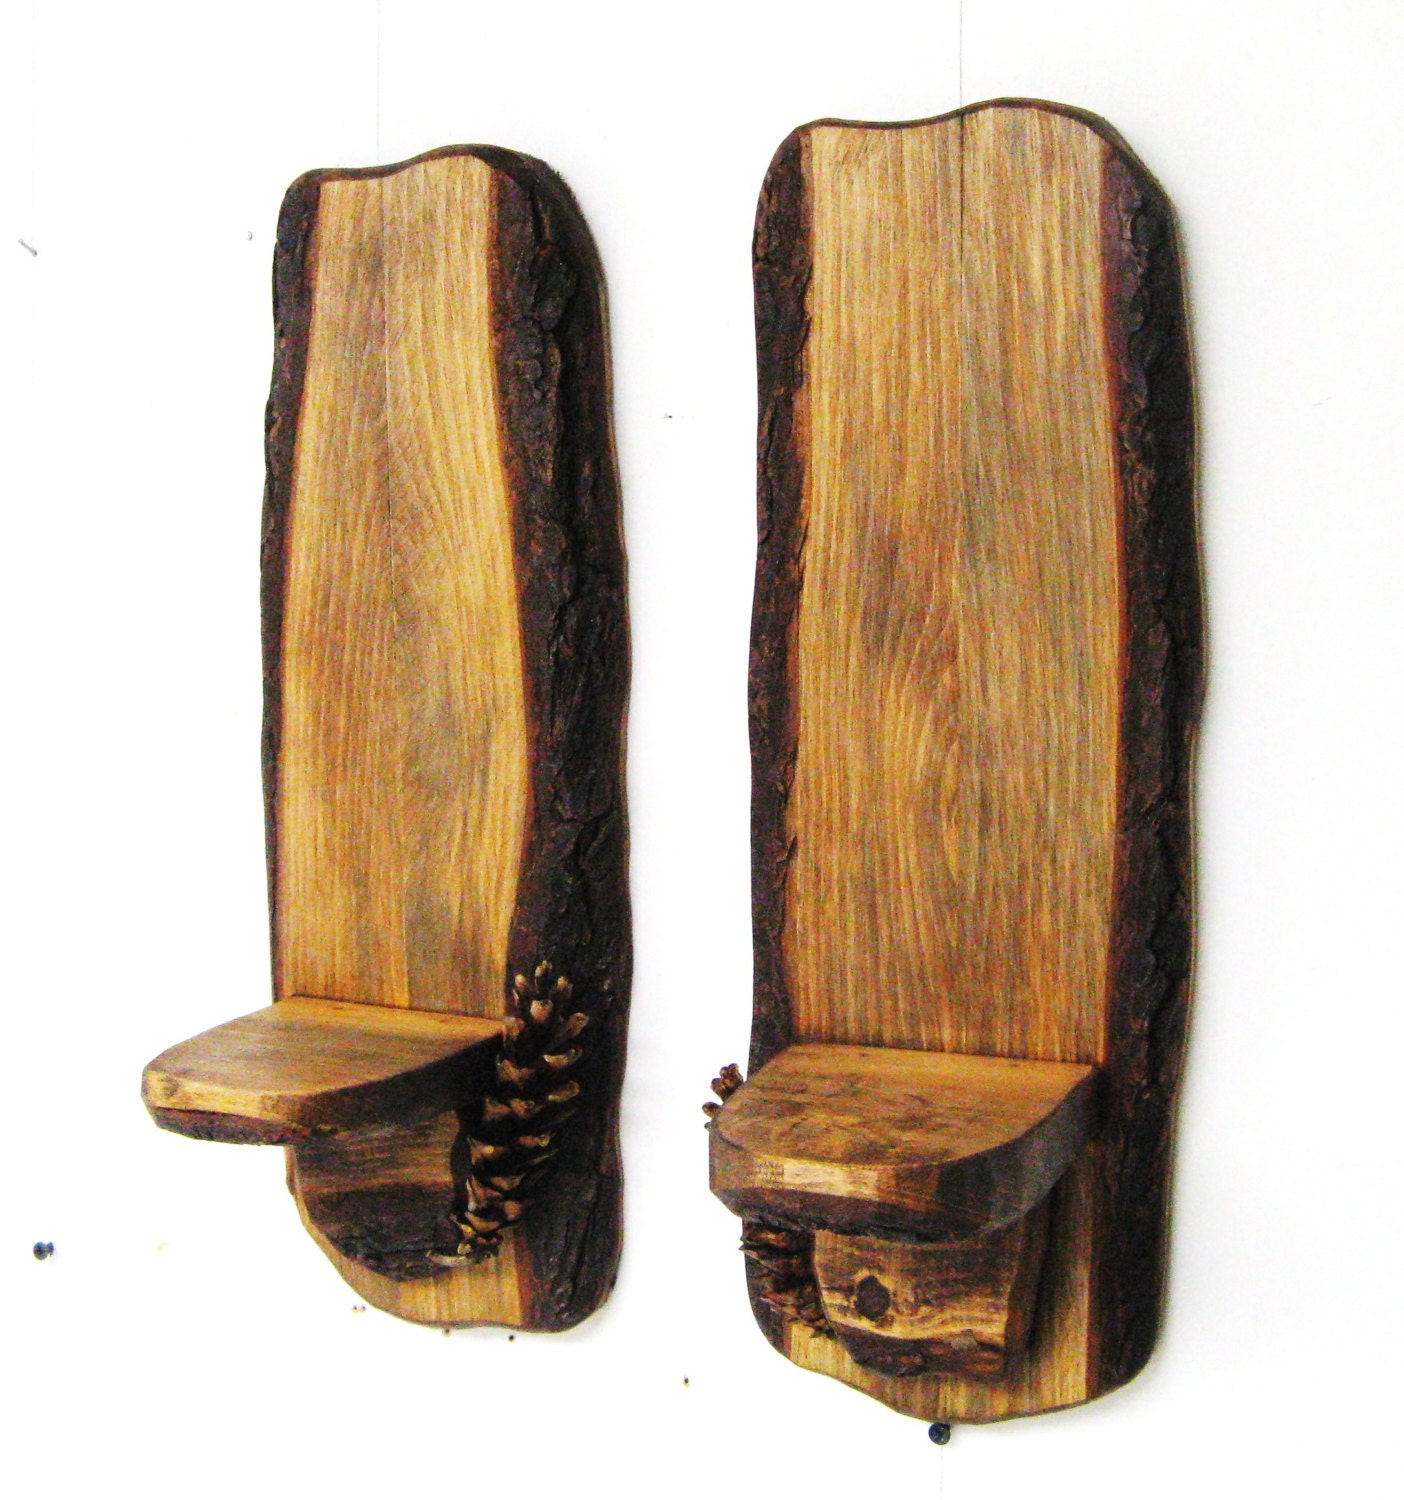 Wall Sconces With Shelf : RUSTIC WALL SCONCES Shelf Rustic Sconces A pair by Woodsoffoster